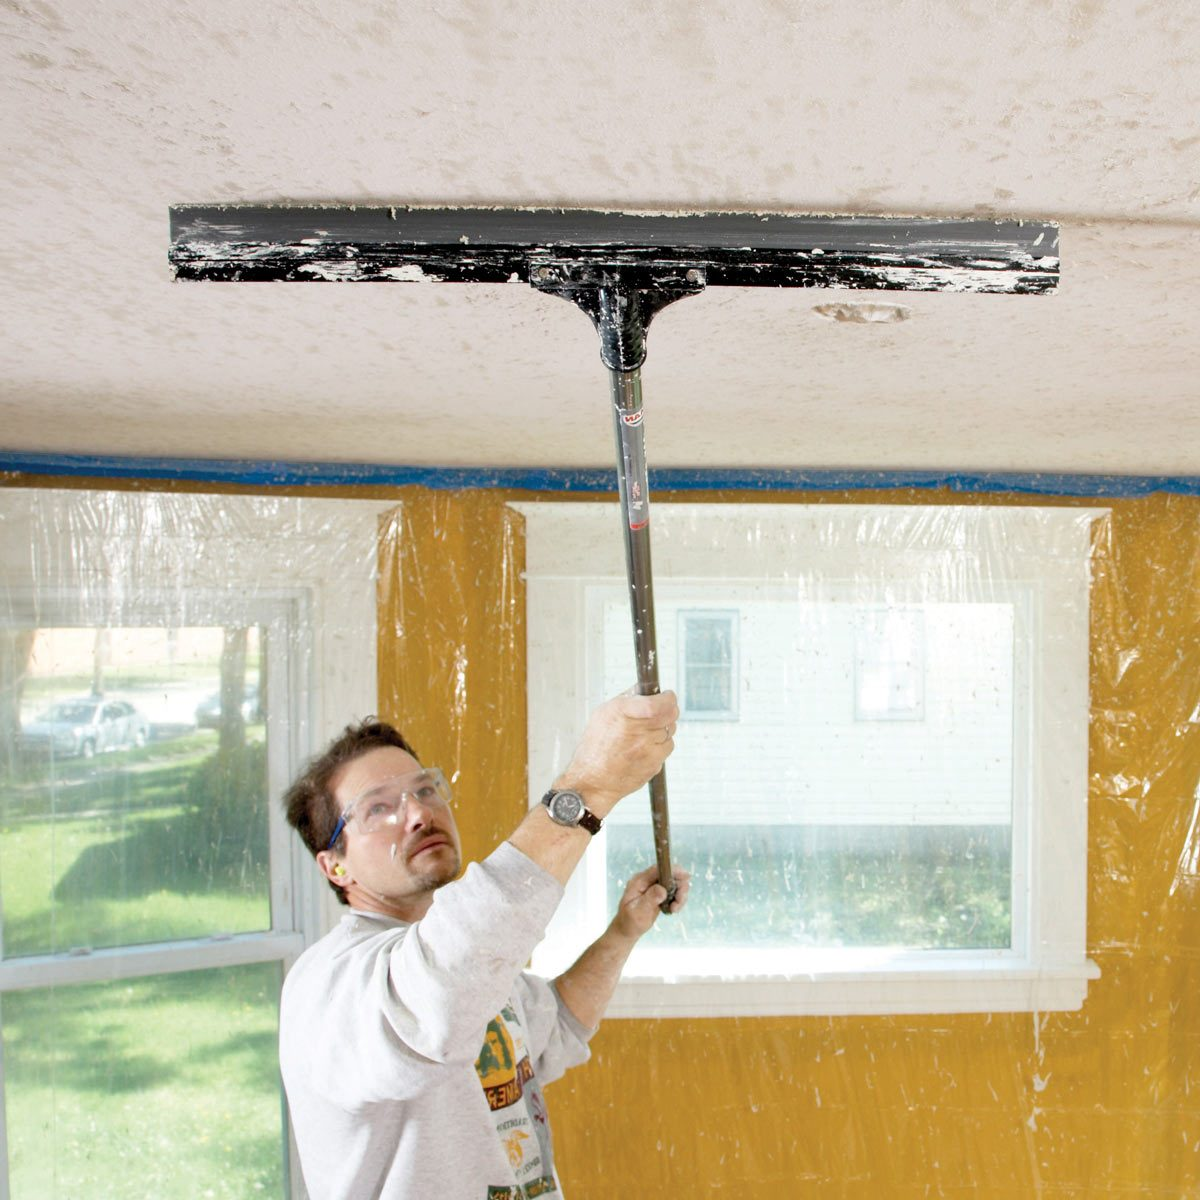 How to Apply Knock Down Texture ceiling